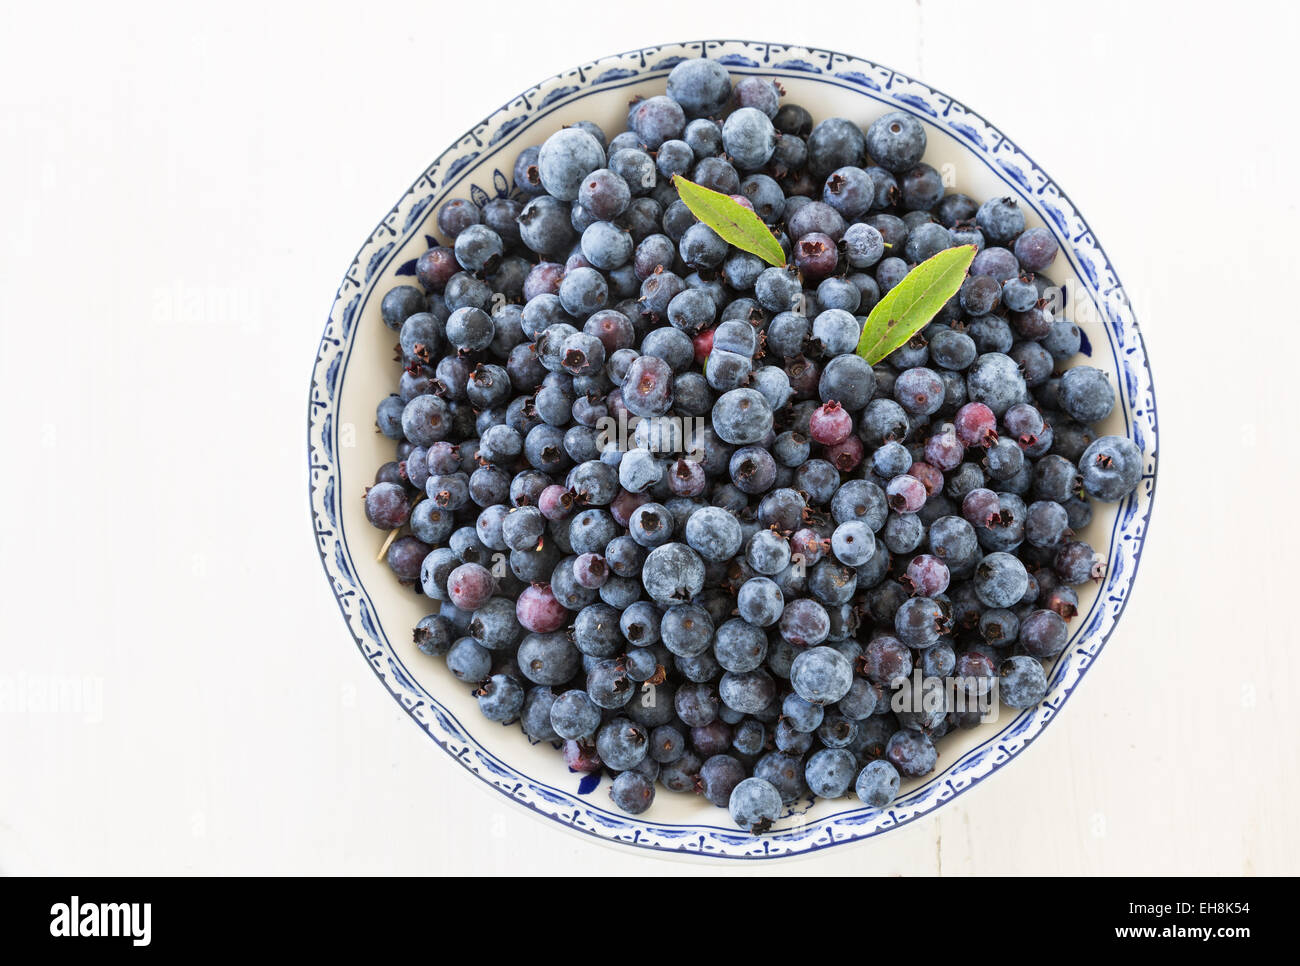 Freshly picked wild low bush blueberries in a china bowl. - Stock Image